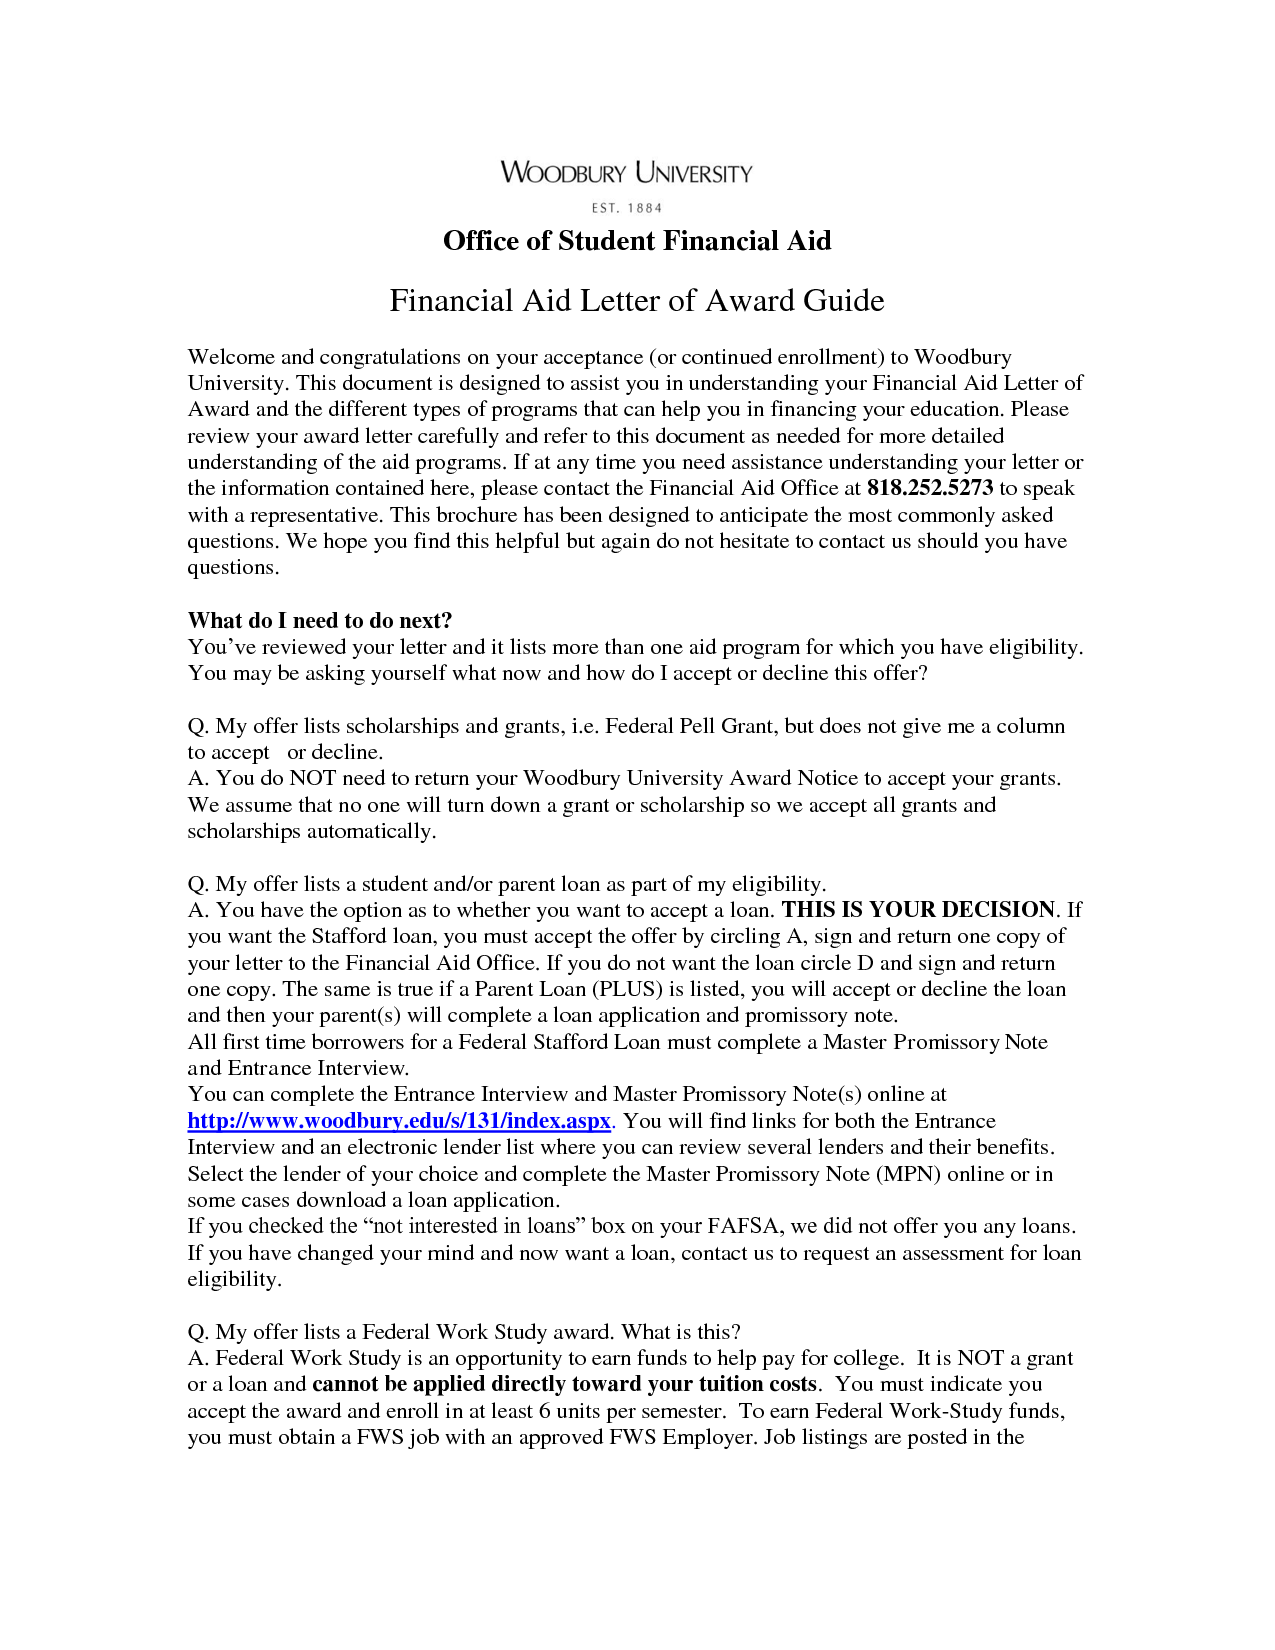 How to write financial support letter